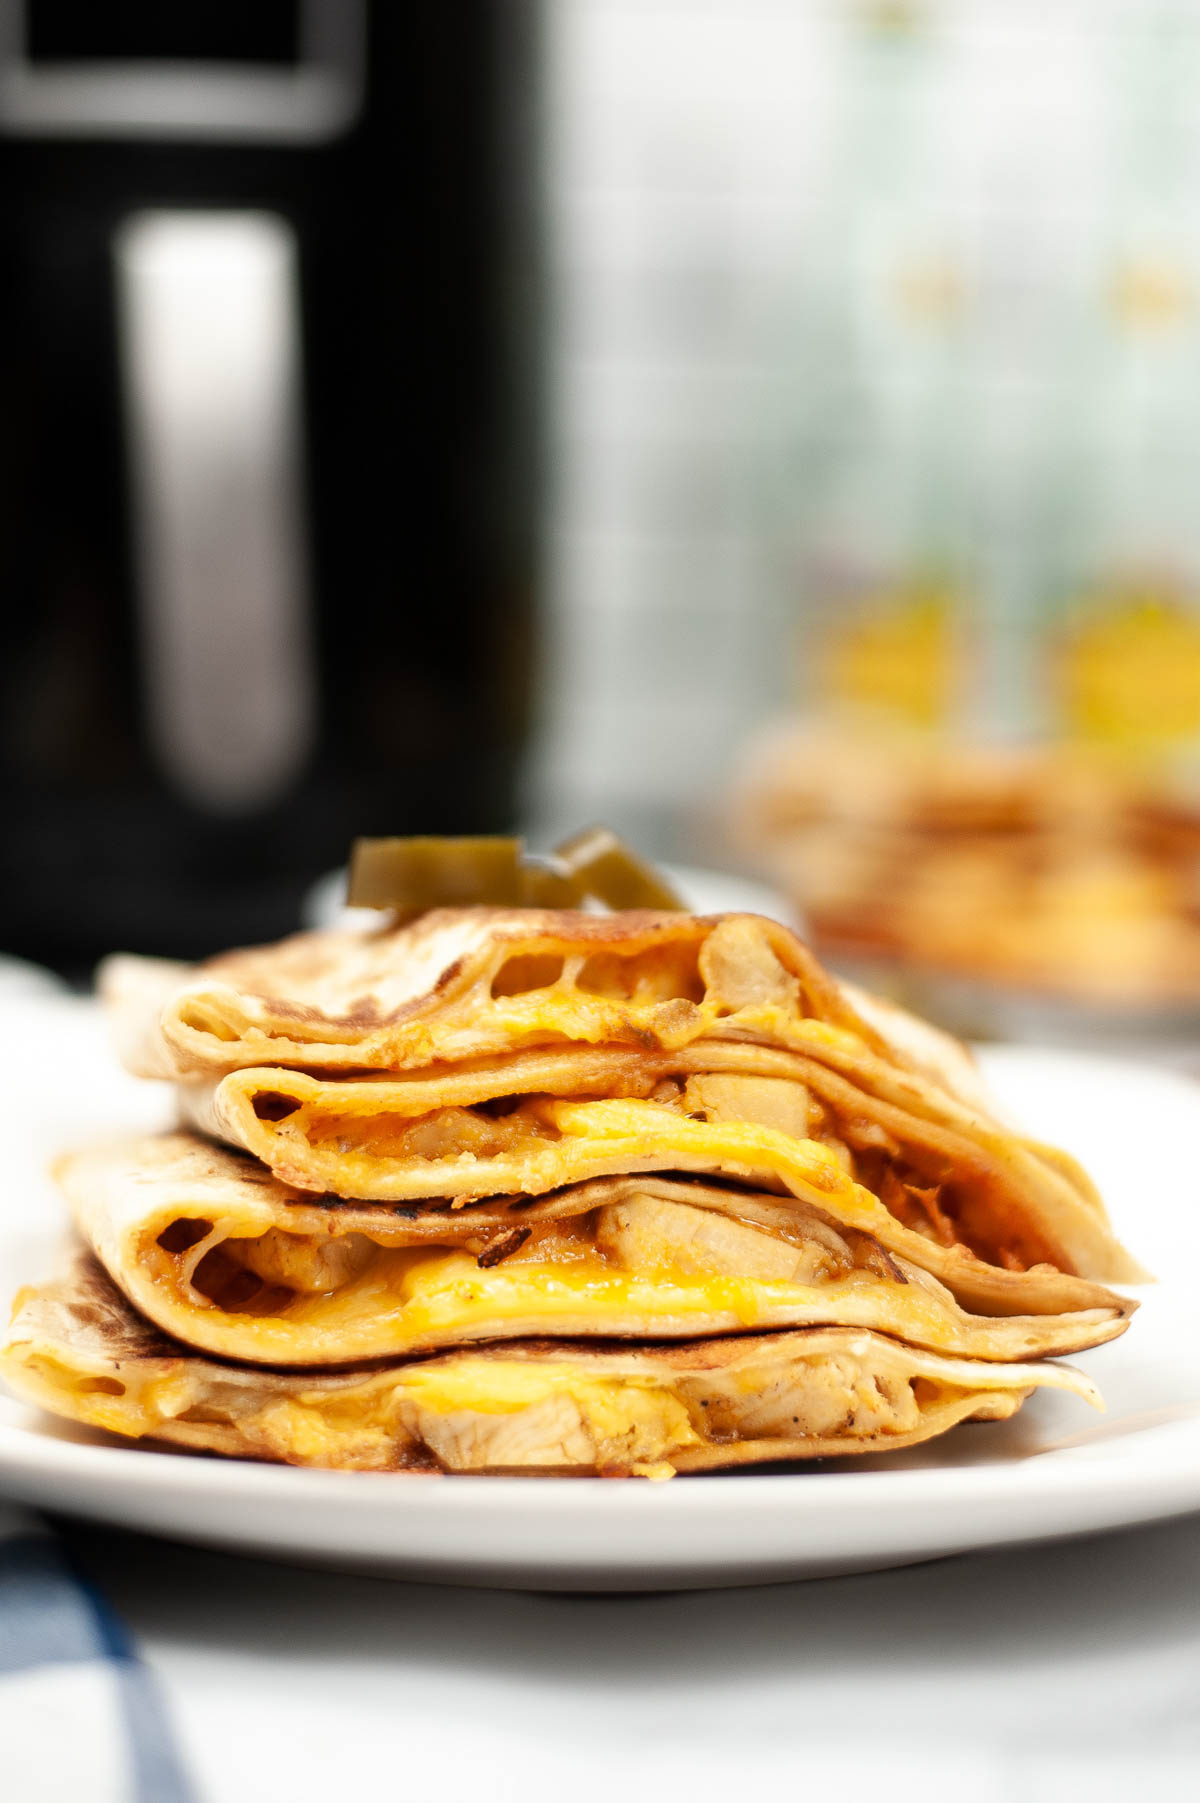 air fryer chicken quesadilla stacked on plate with air fryer behind it.